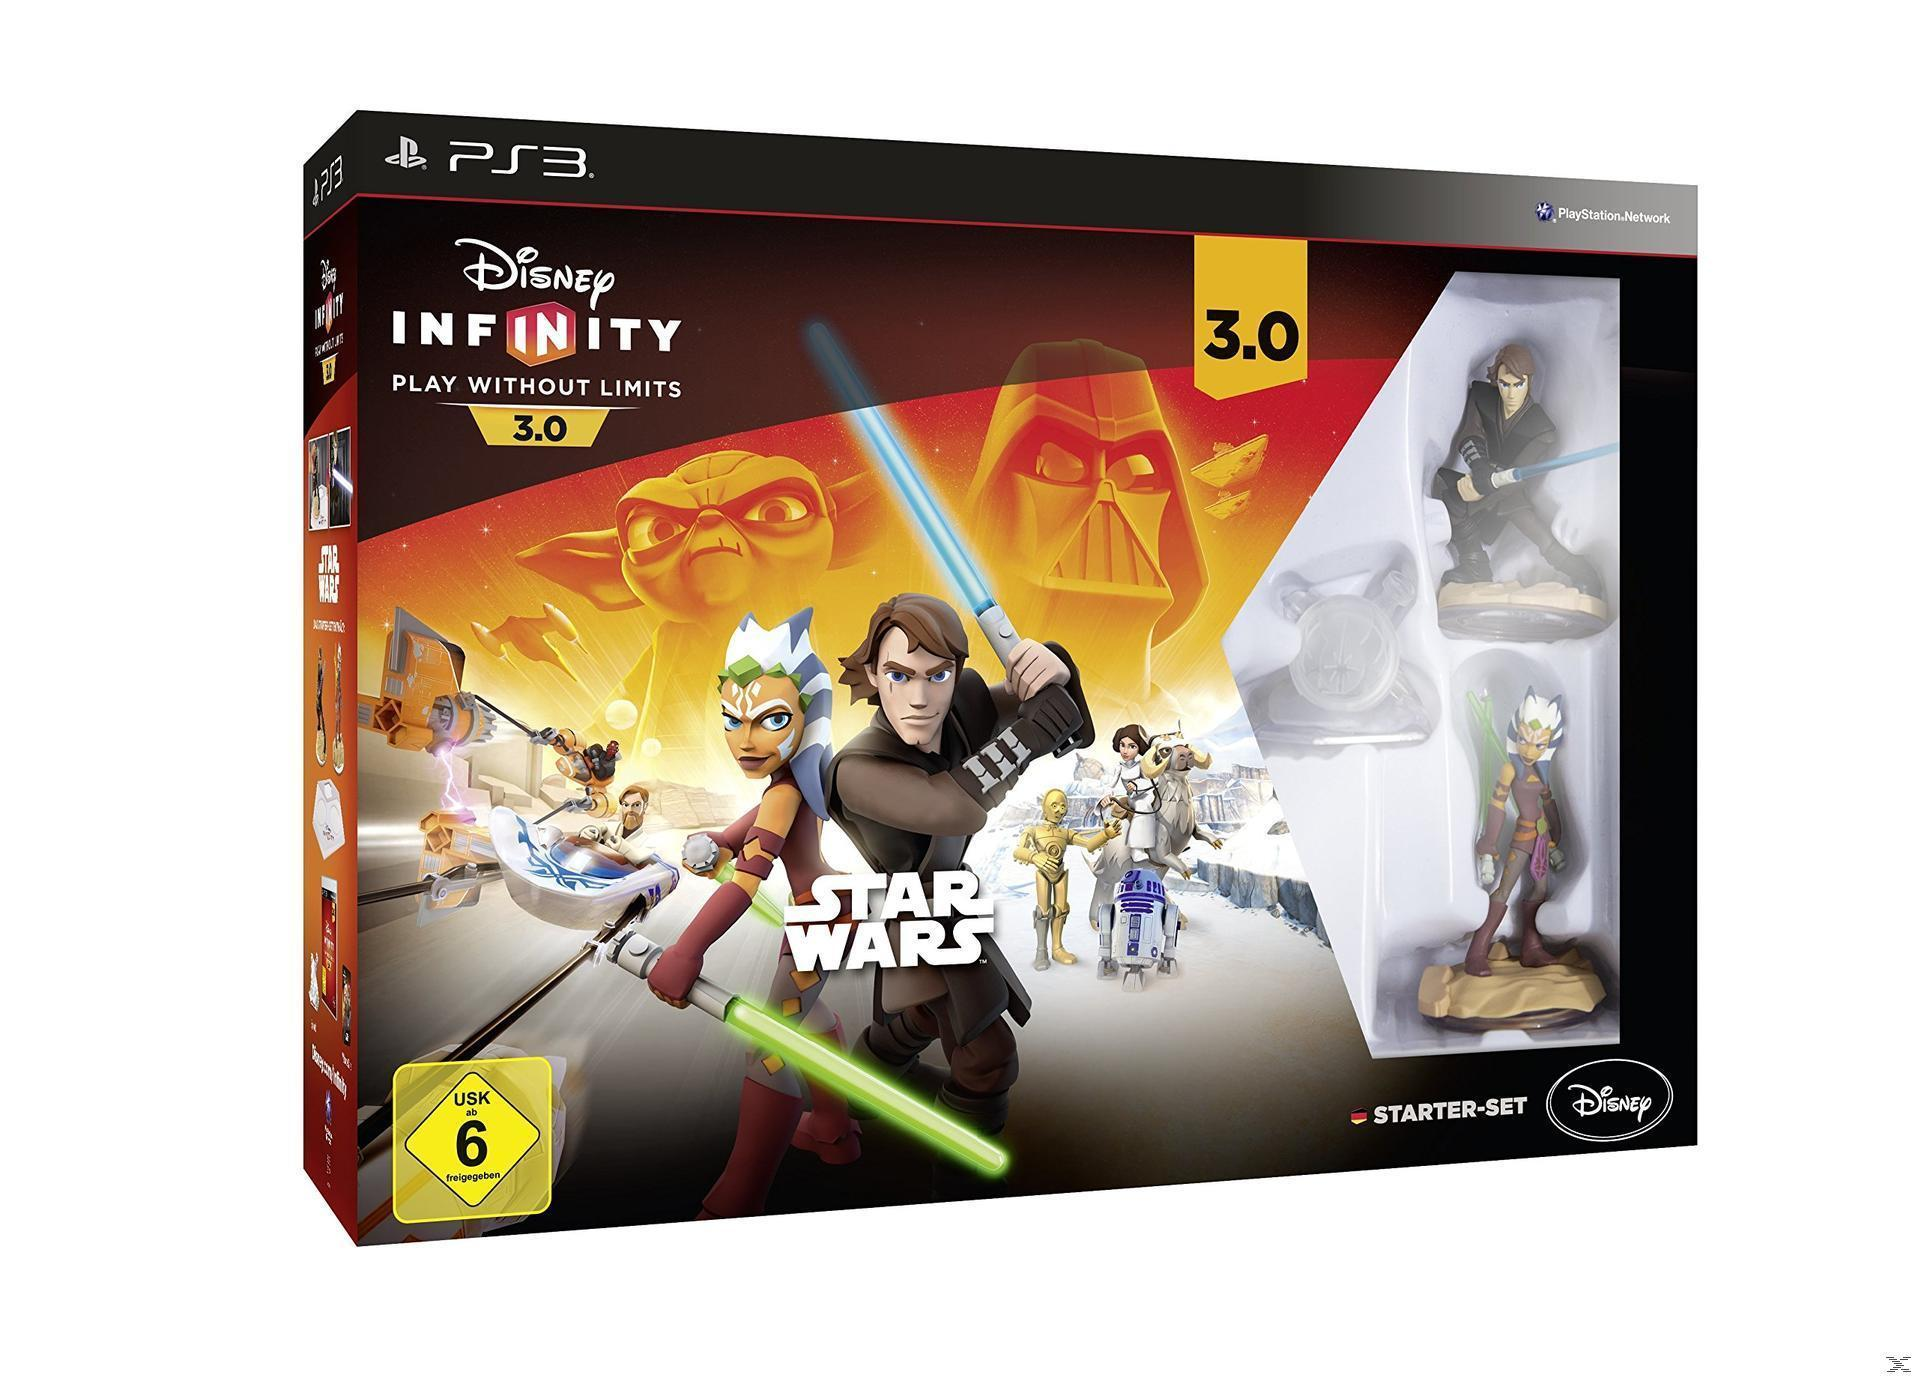 Disney Infinity 3.0: Play Without Limits Star Wars Starter-Set (Playstation3) für 5,00 Euro